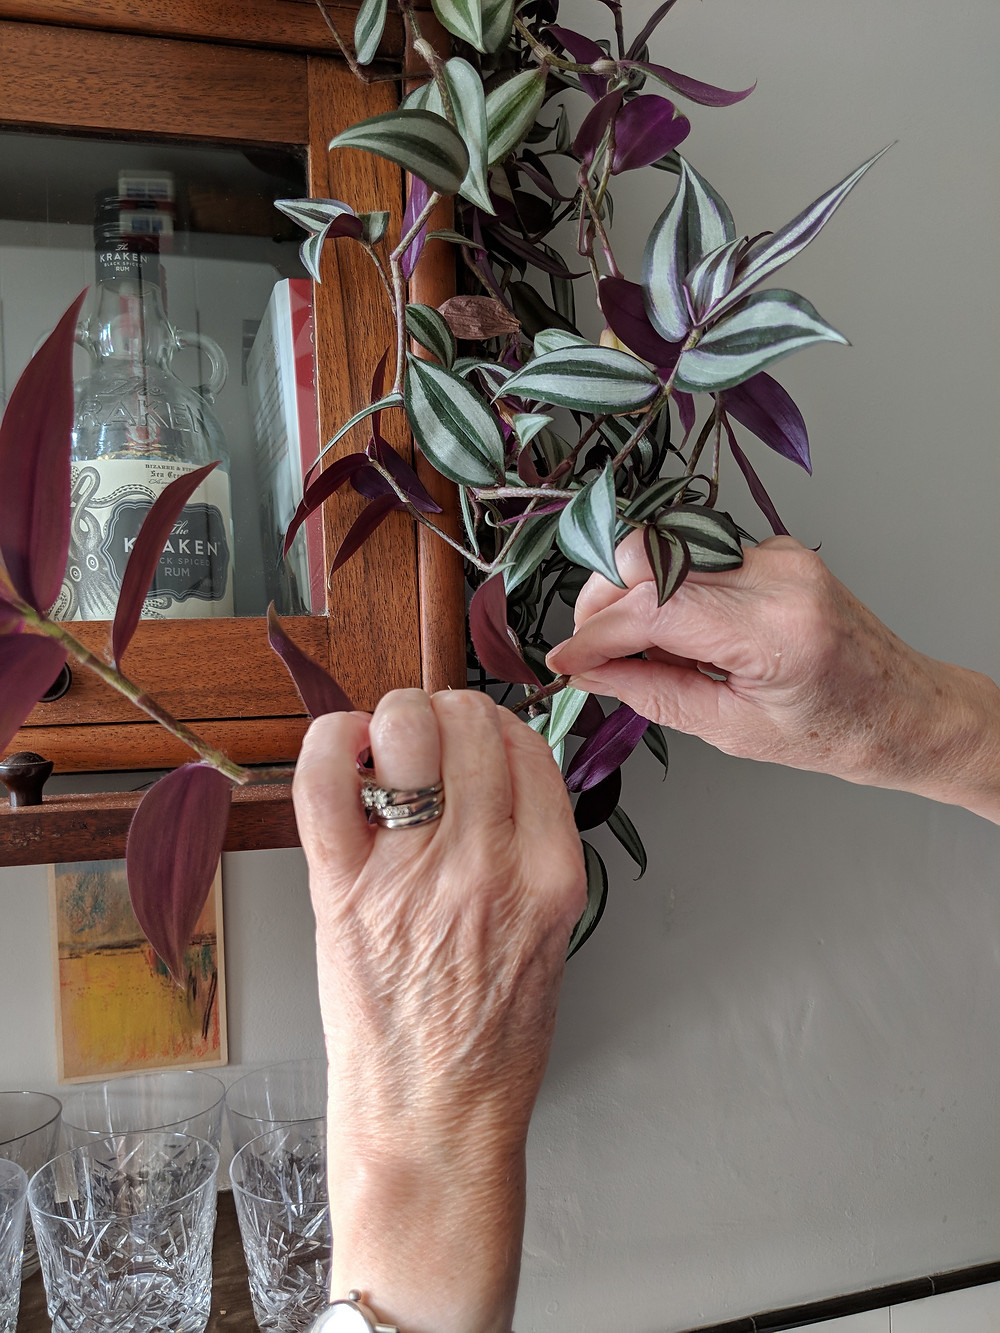 A woman's hands are shown breaking off cuttings from a purple and green Tradescantia house plant.